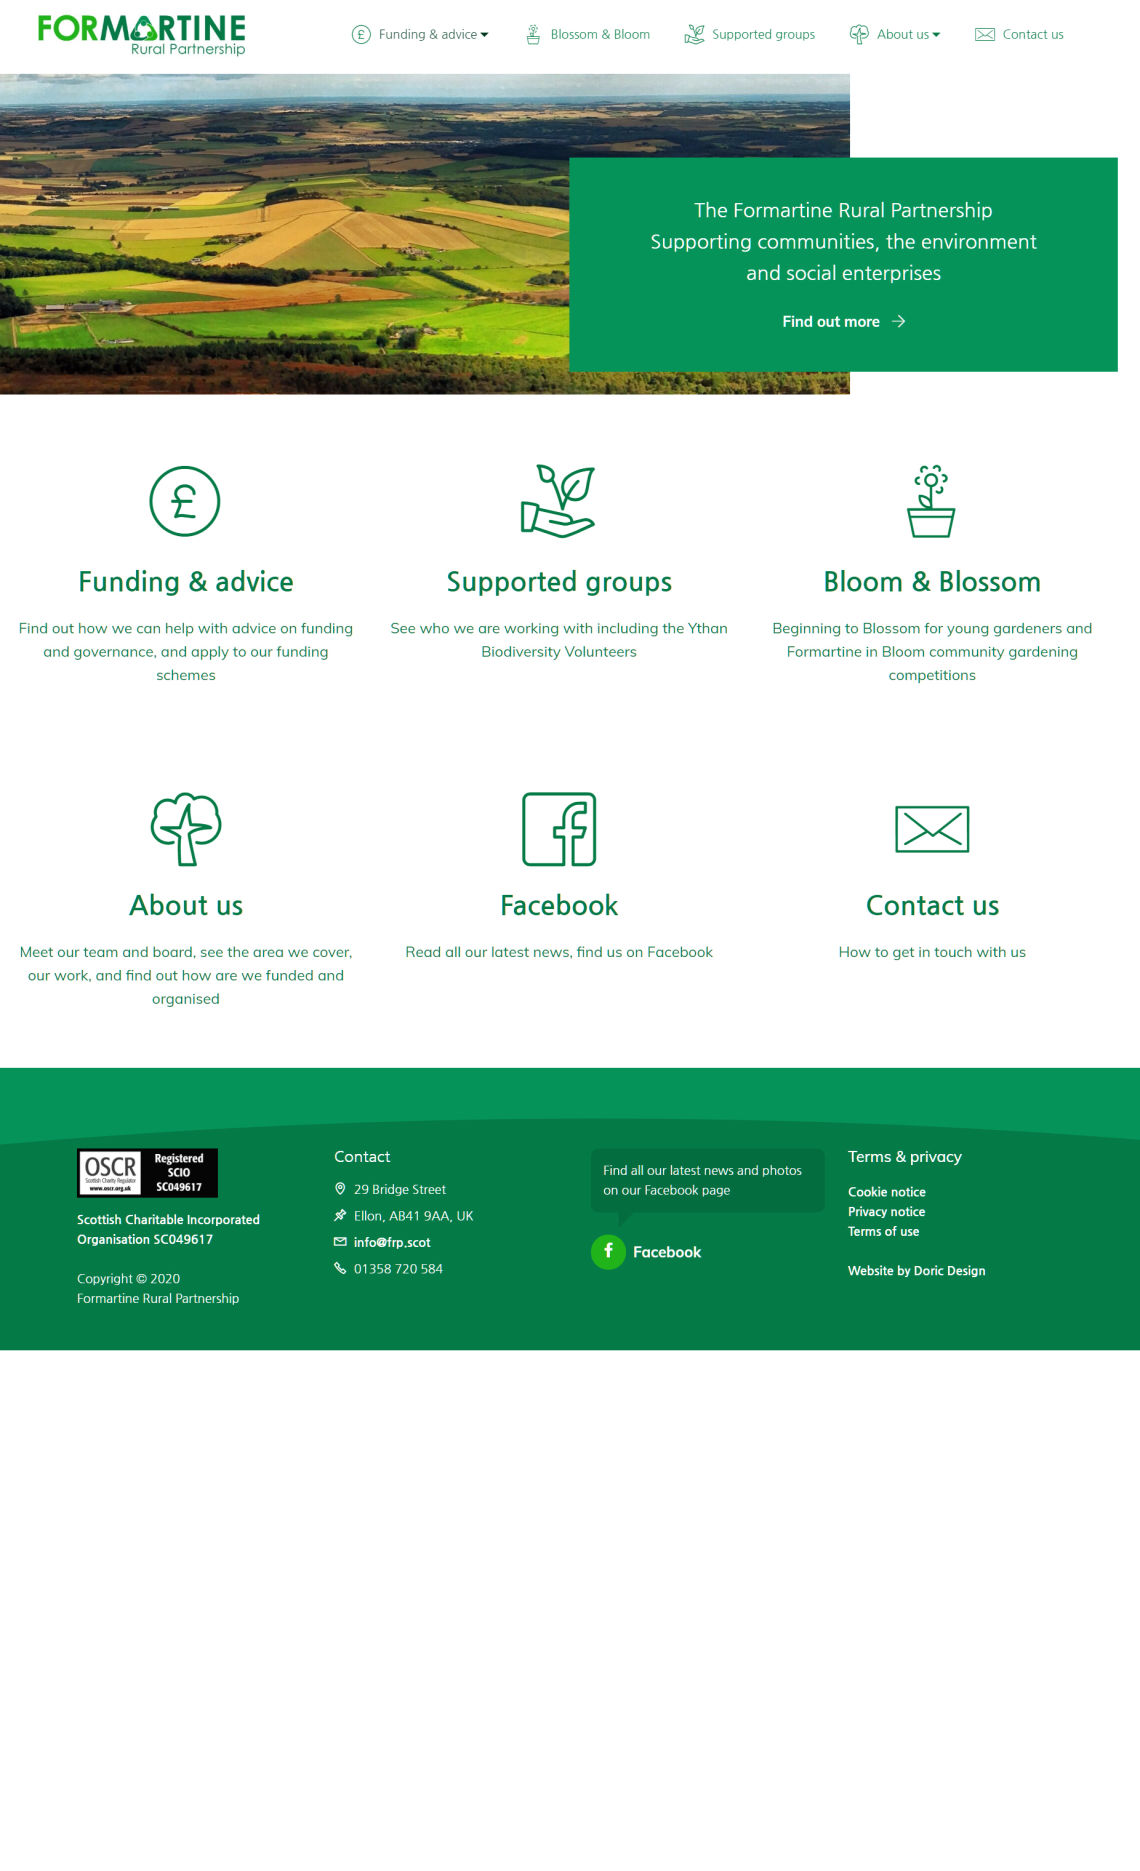 Homepage of the Formartine Rural Partnership